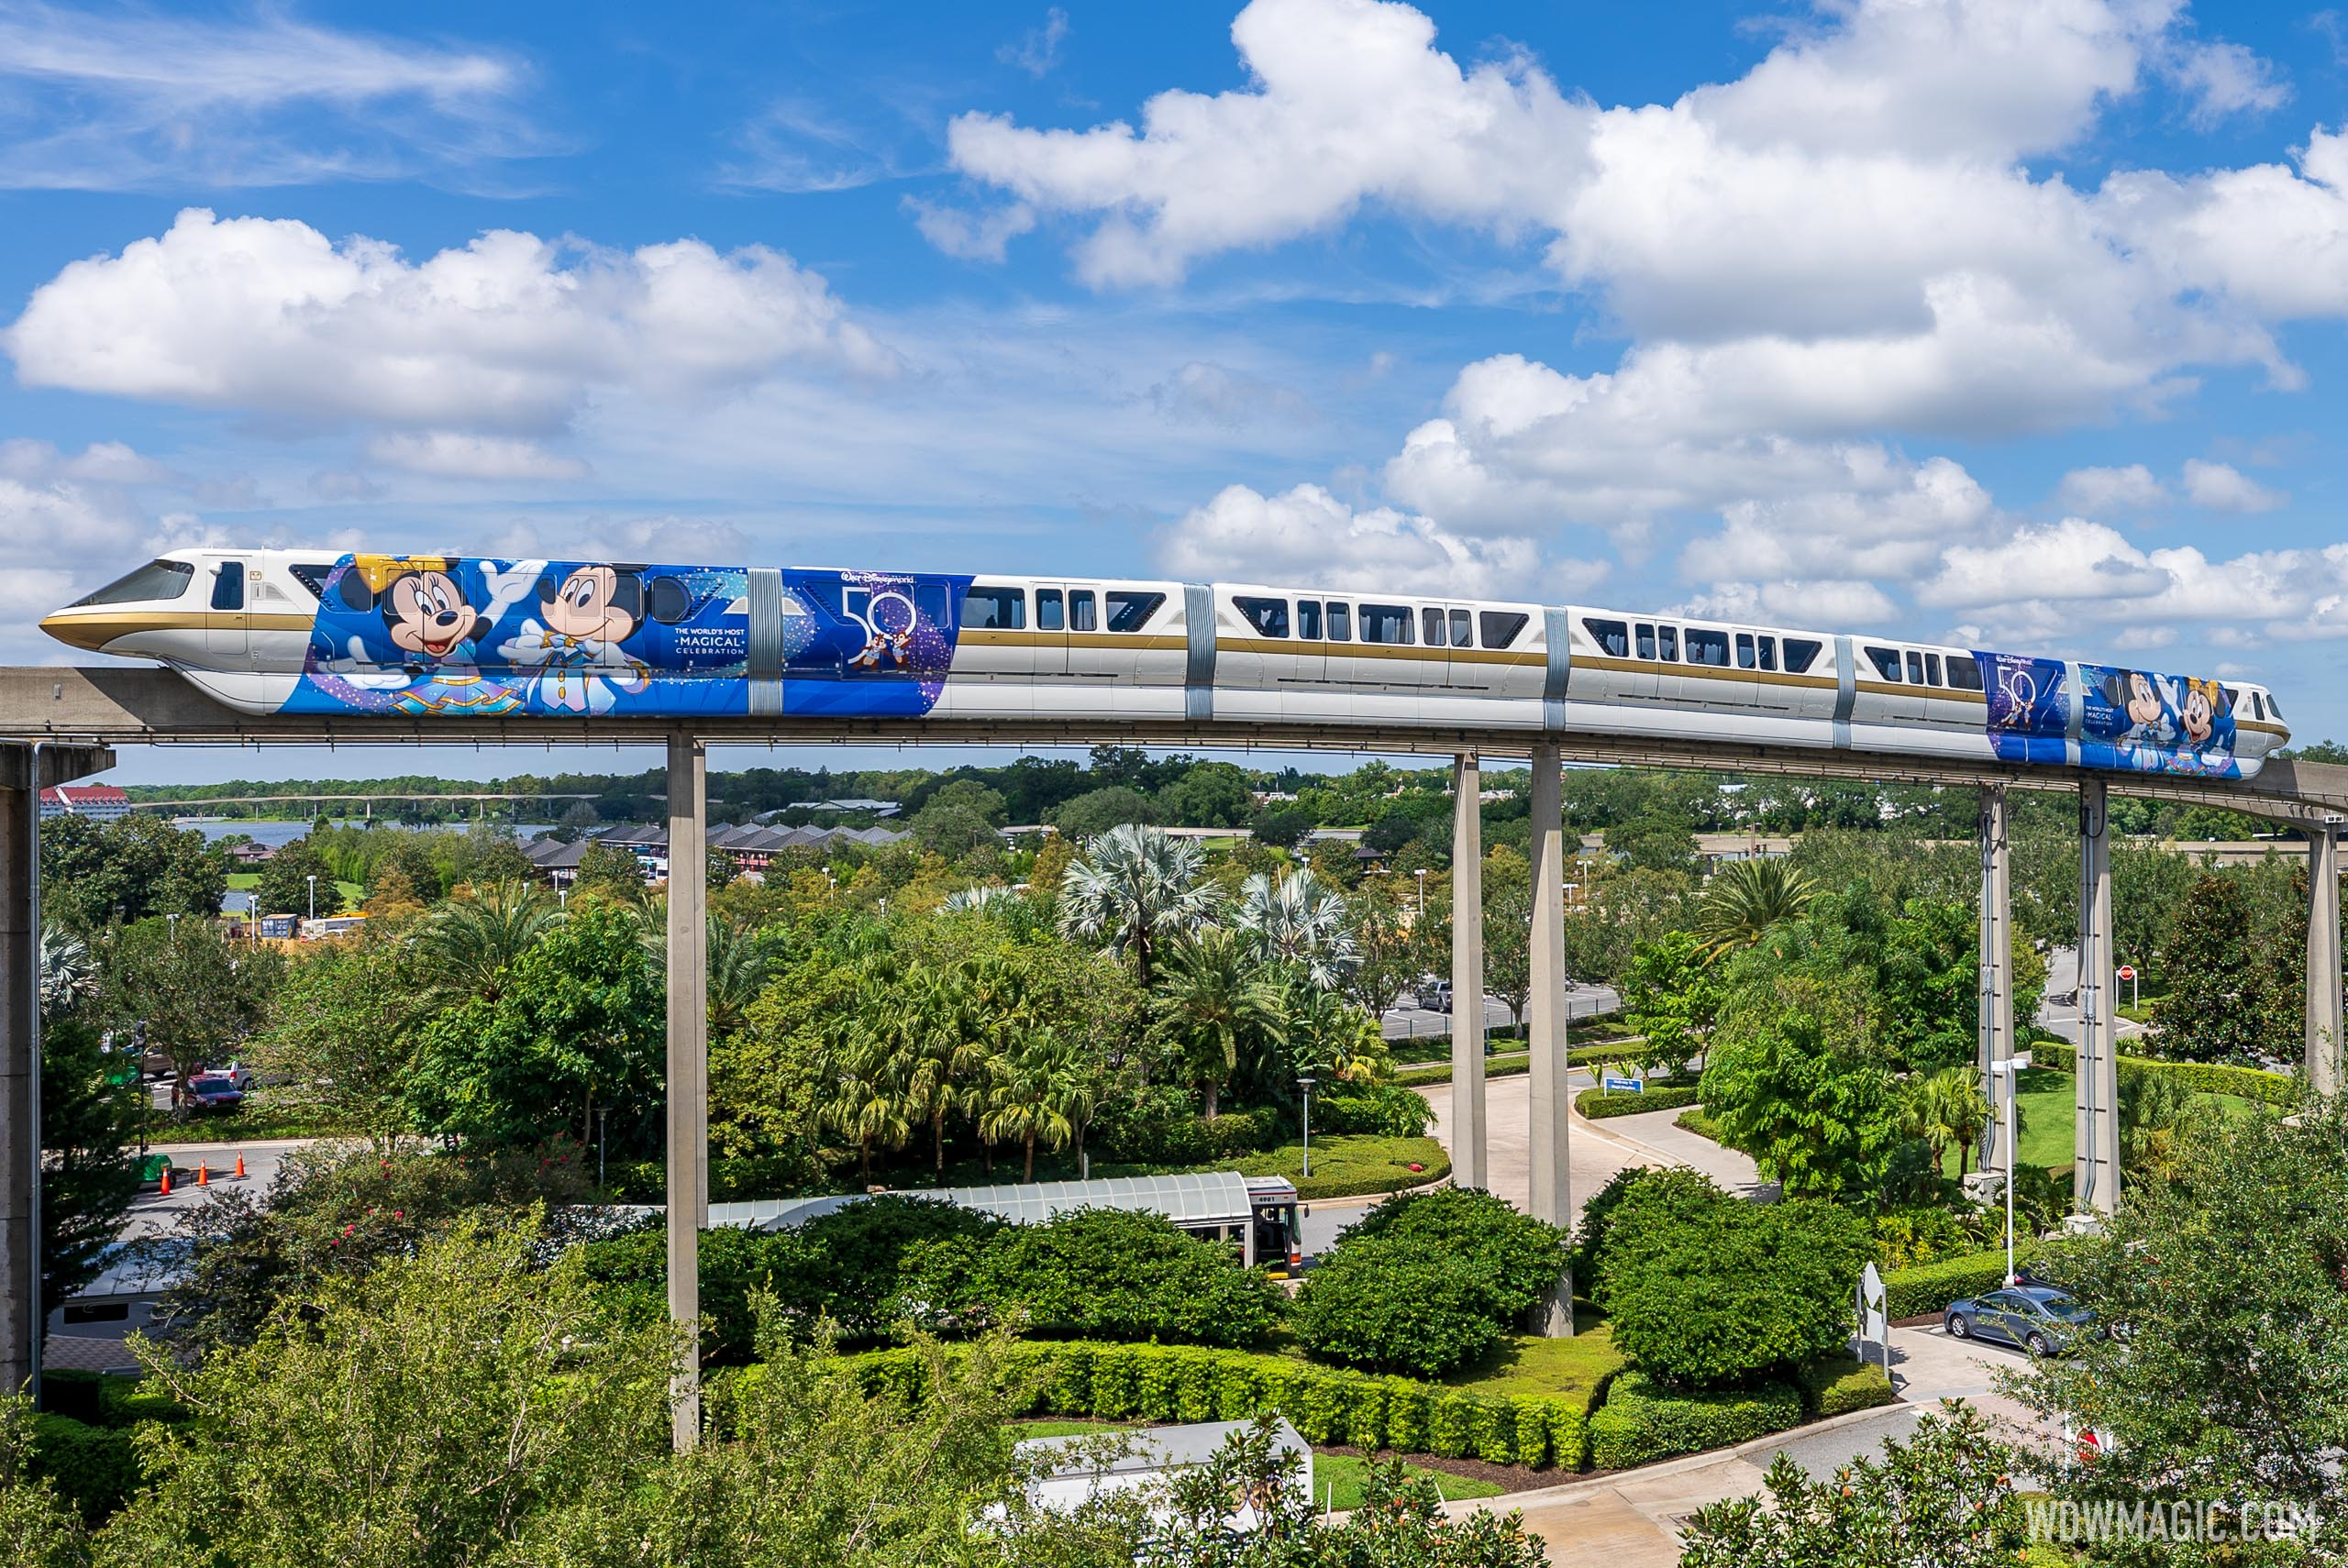 Monorail Gold wrapped with Walt Disney World 50th anniversary 'World's Most Magical Celebration' decal